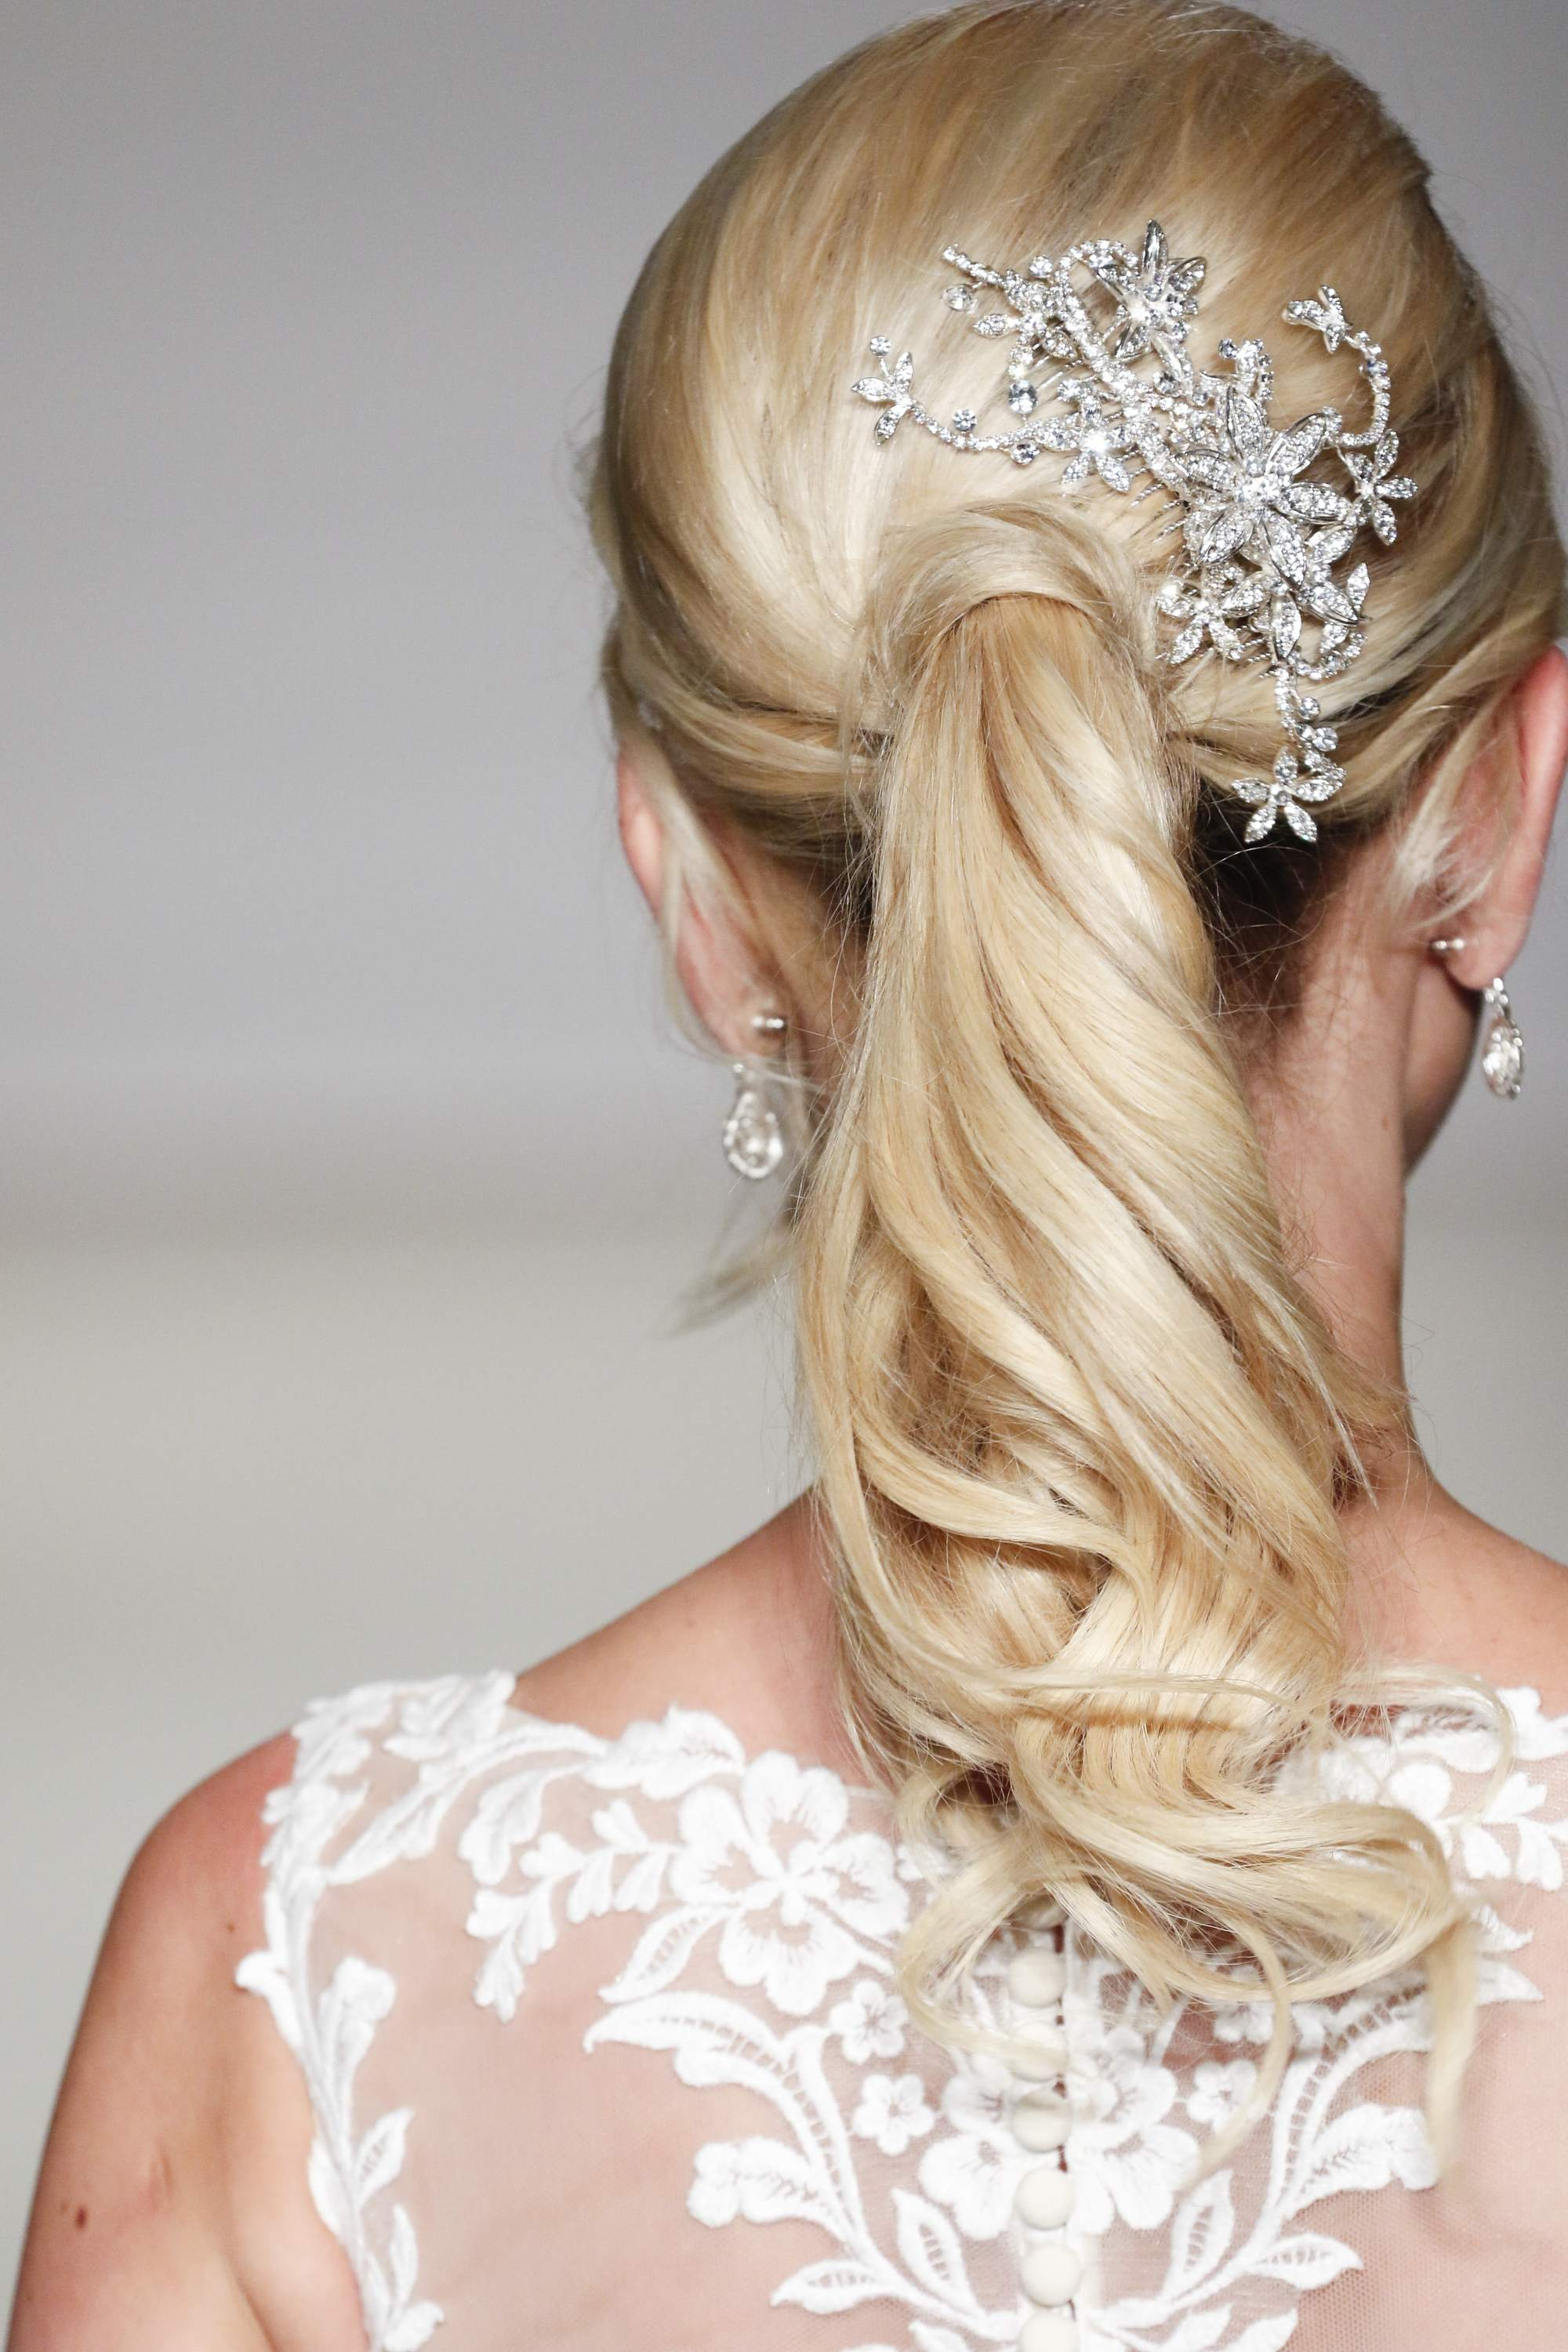 blonde bridal model with her hair in a curly ponytail with a hair accessory